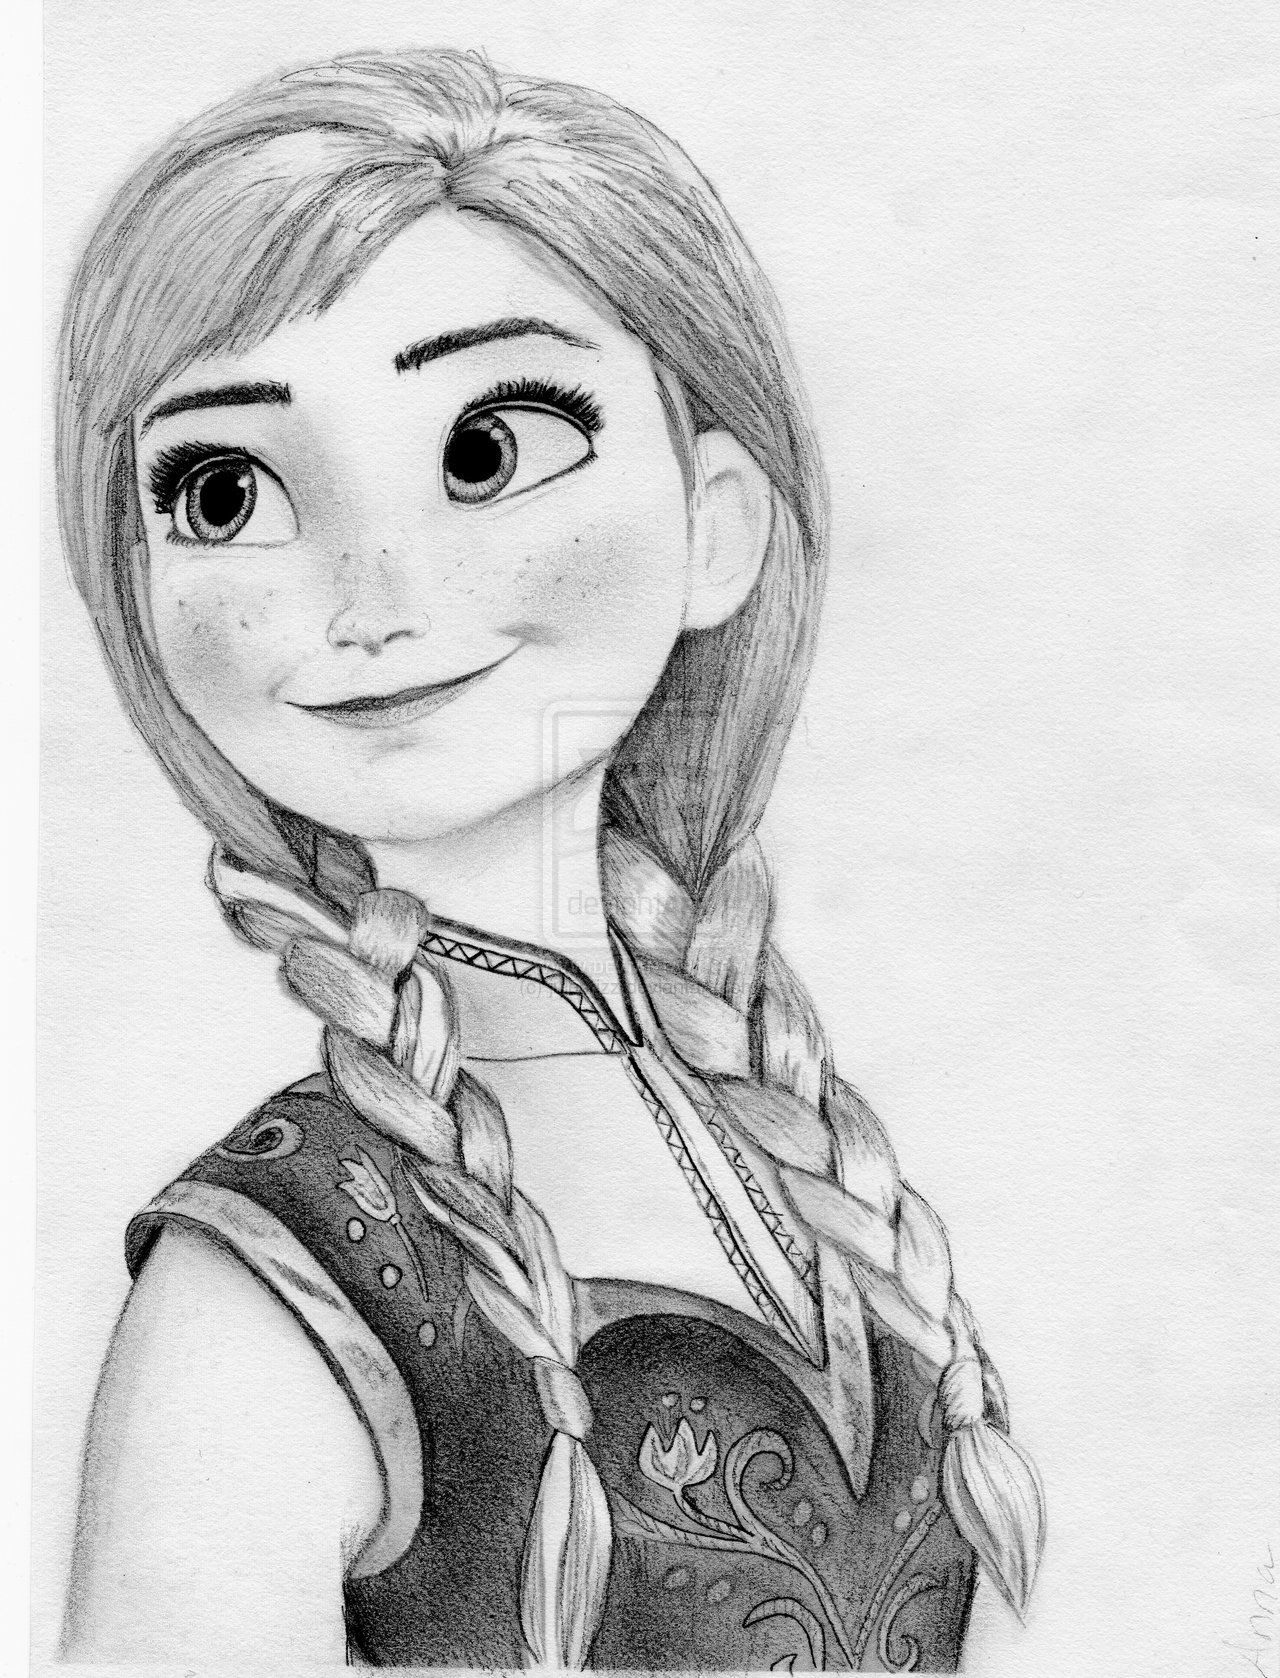 Anna From Disney S Frozen By Julesrizz On Deviantart Disney Princess Drawings Disney Princess Sketches Princess Sketches